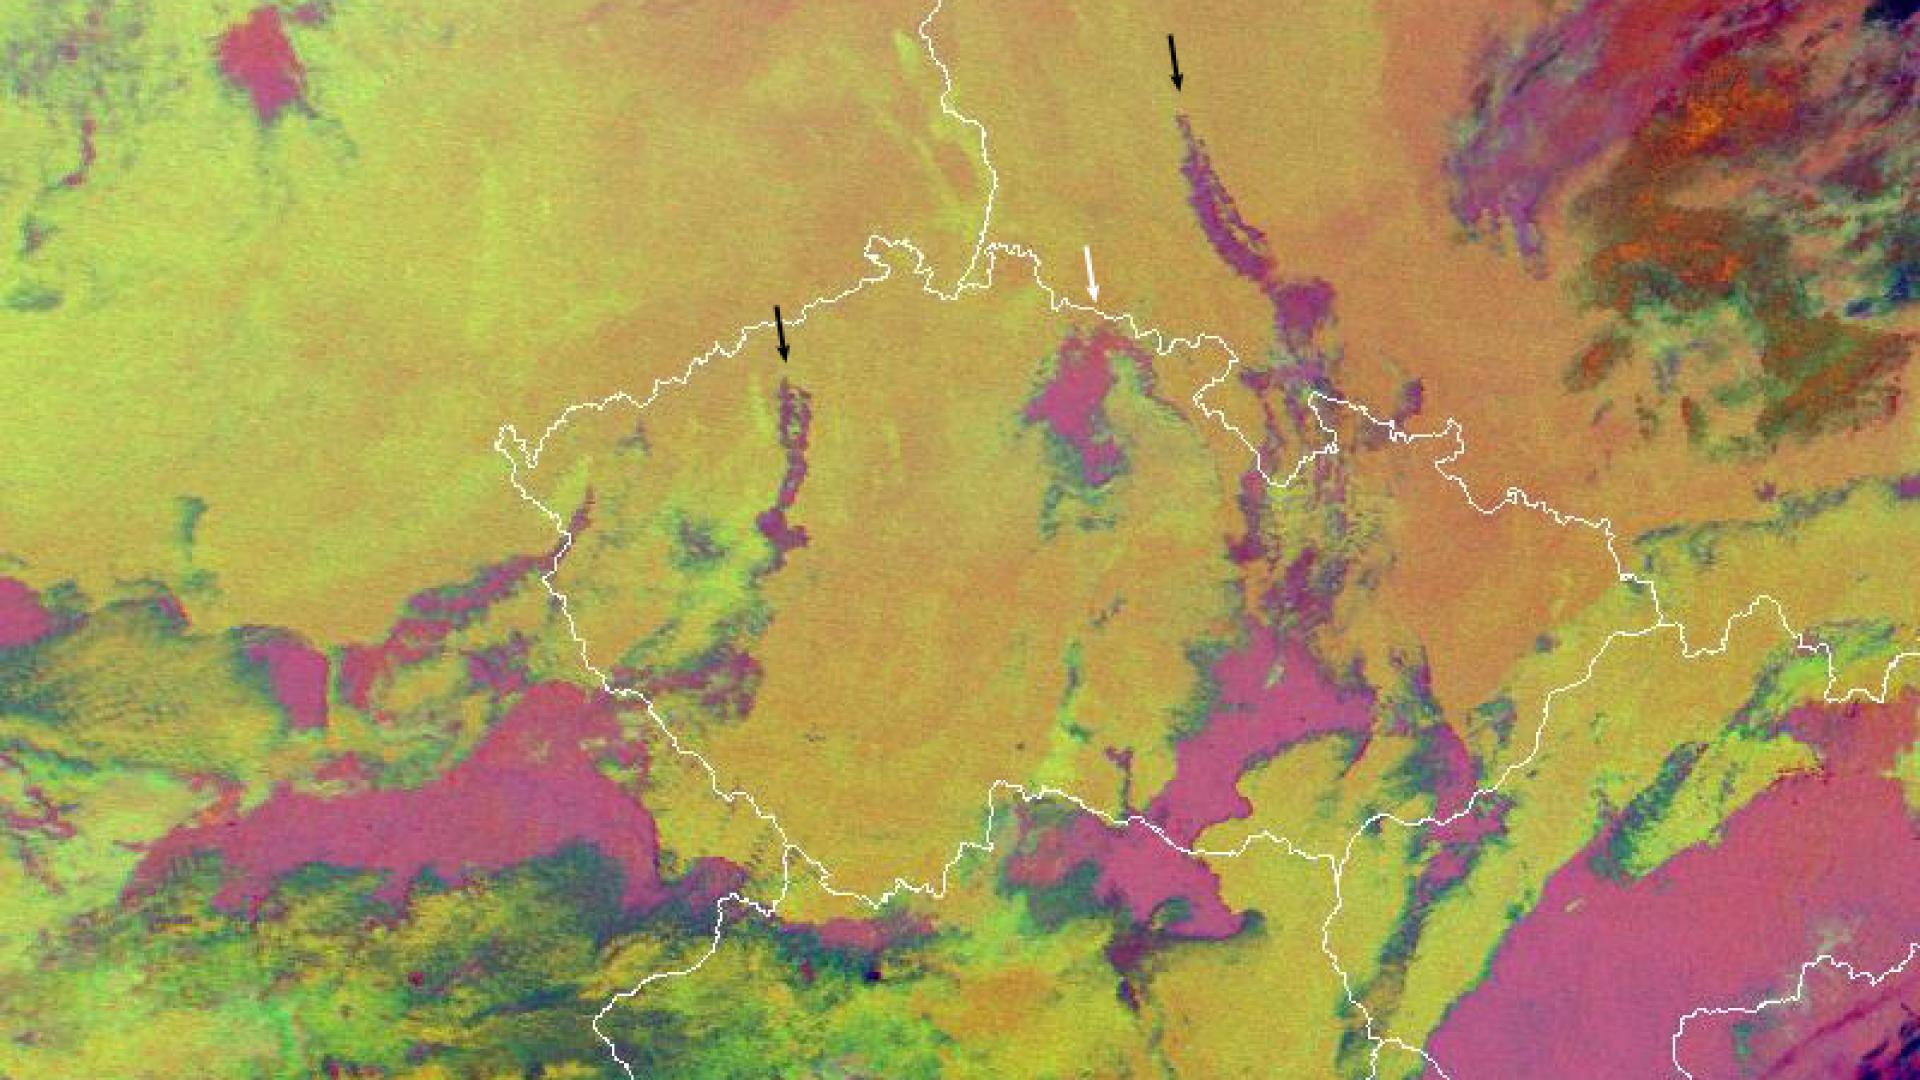 Pollution causes cloud-free gaps in clouds